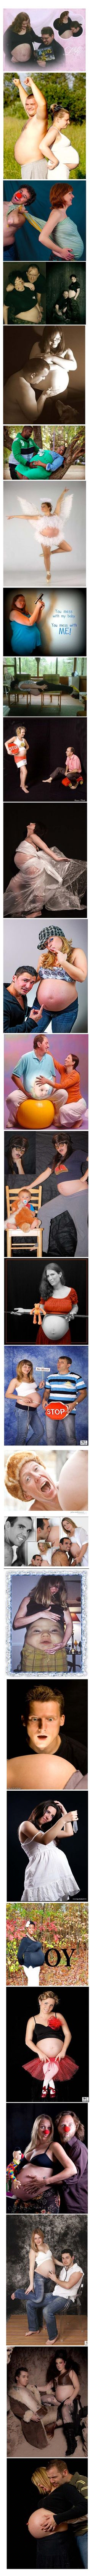 Worst. Pregnancy Announcement Pictures. Ever.